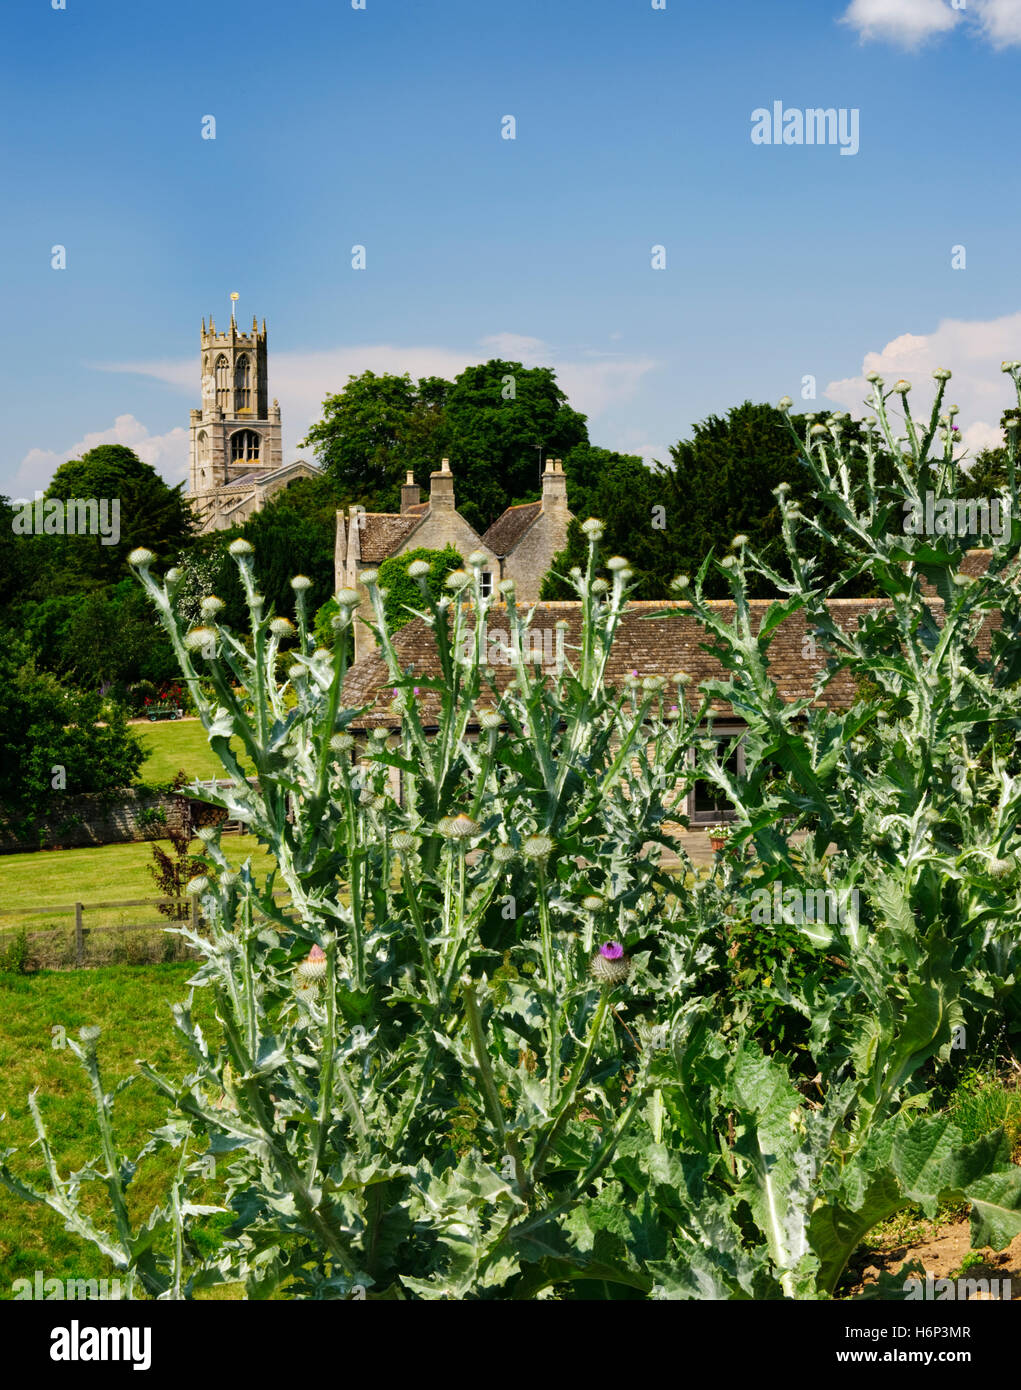 Fotheringhay C15th church, Northamptonshire, seen from the castle motte planted with Queen Mary's tears (Scotch - Stock Image